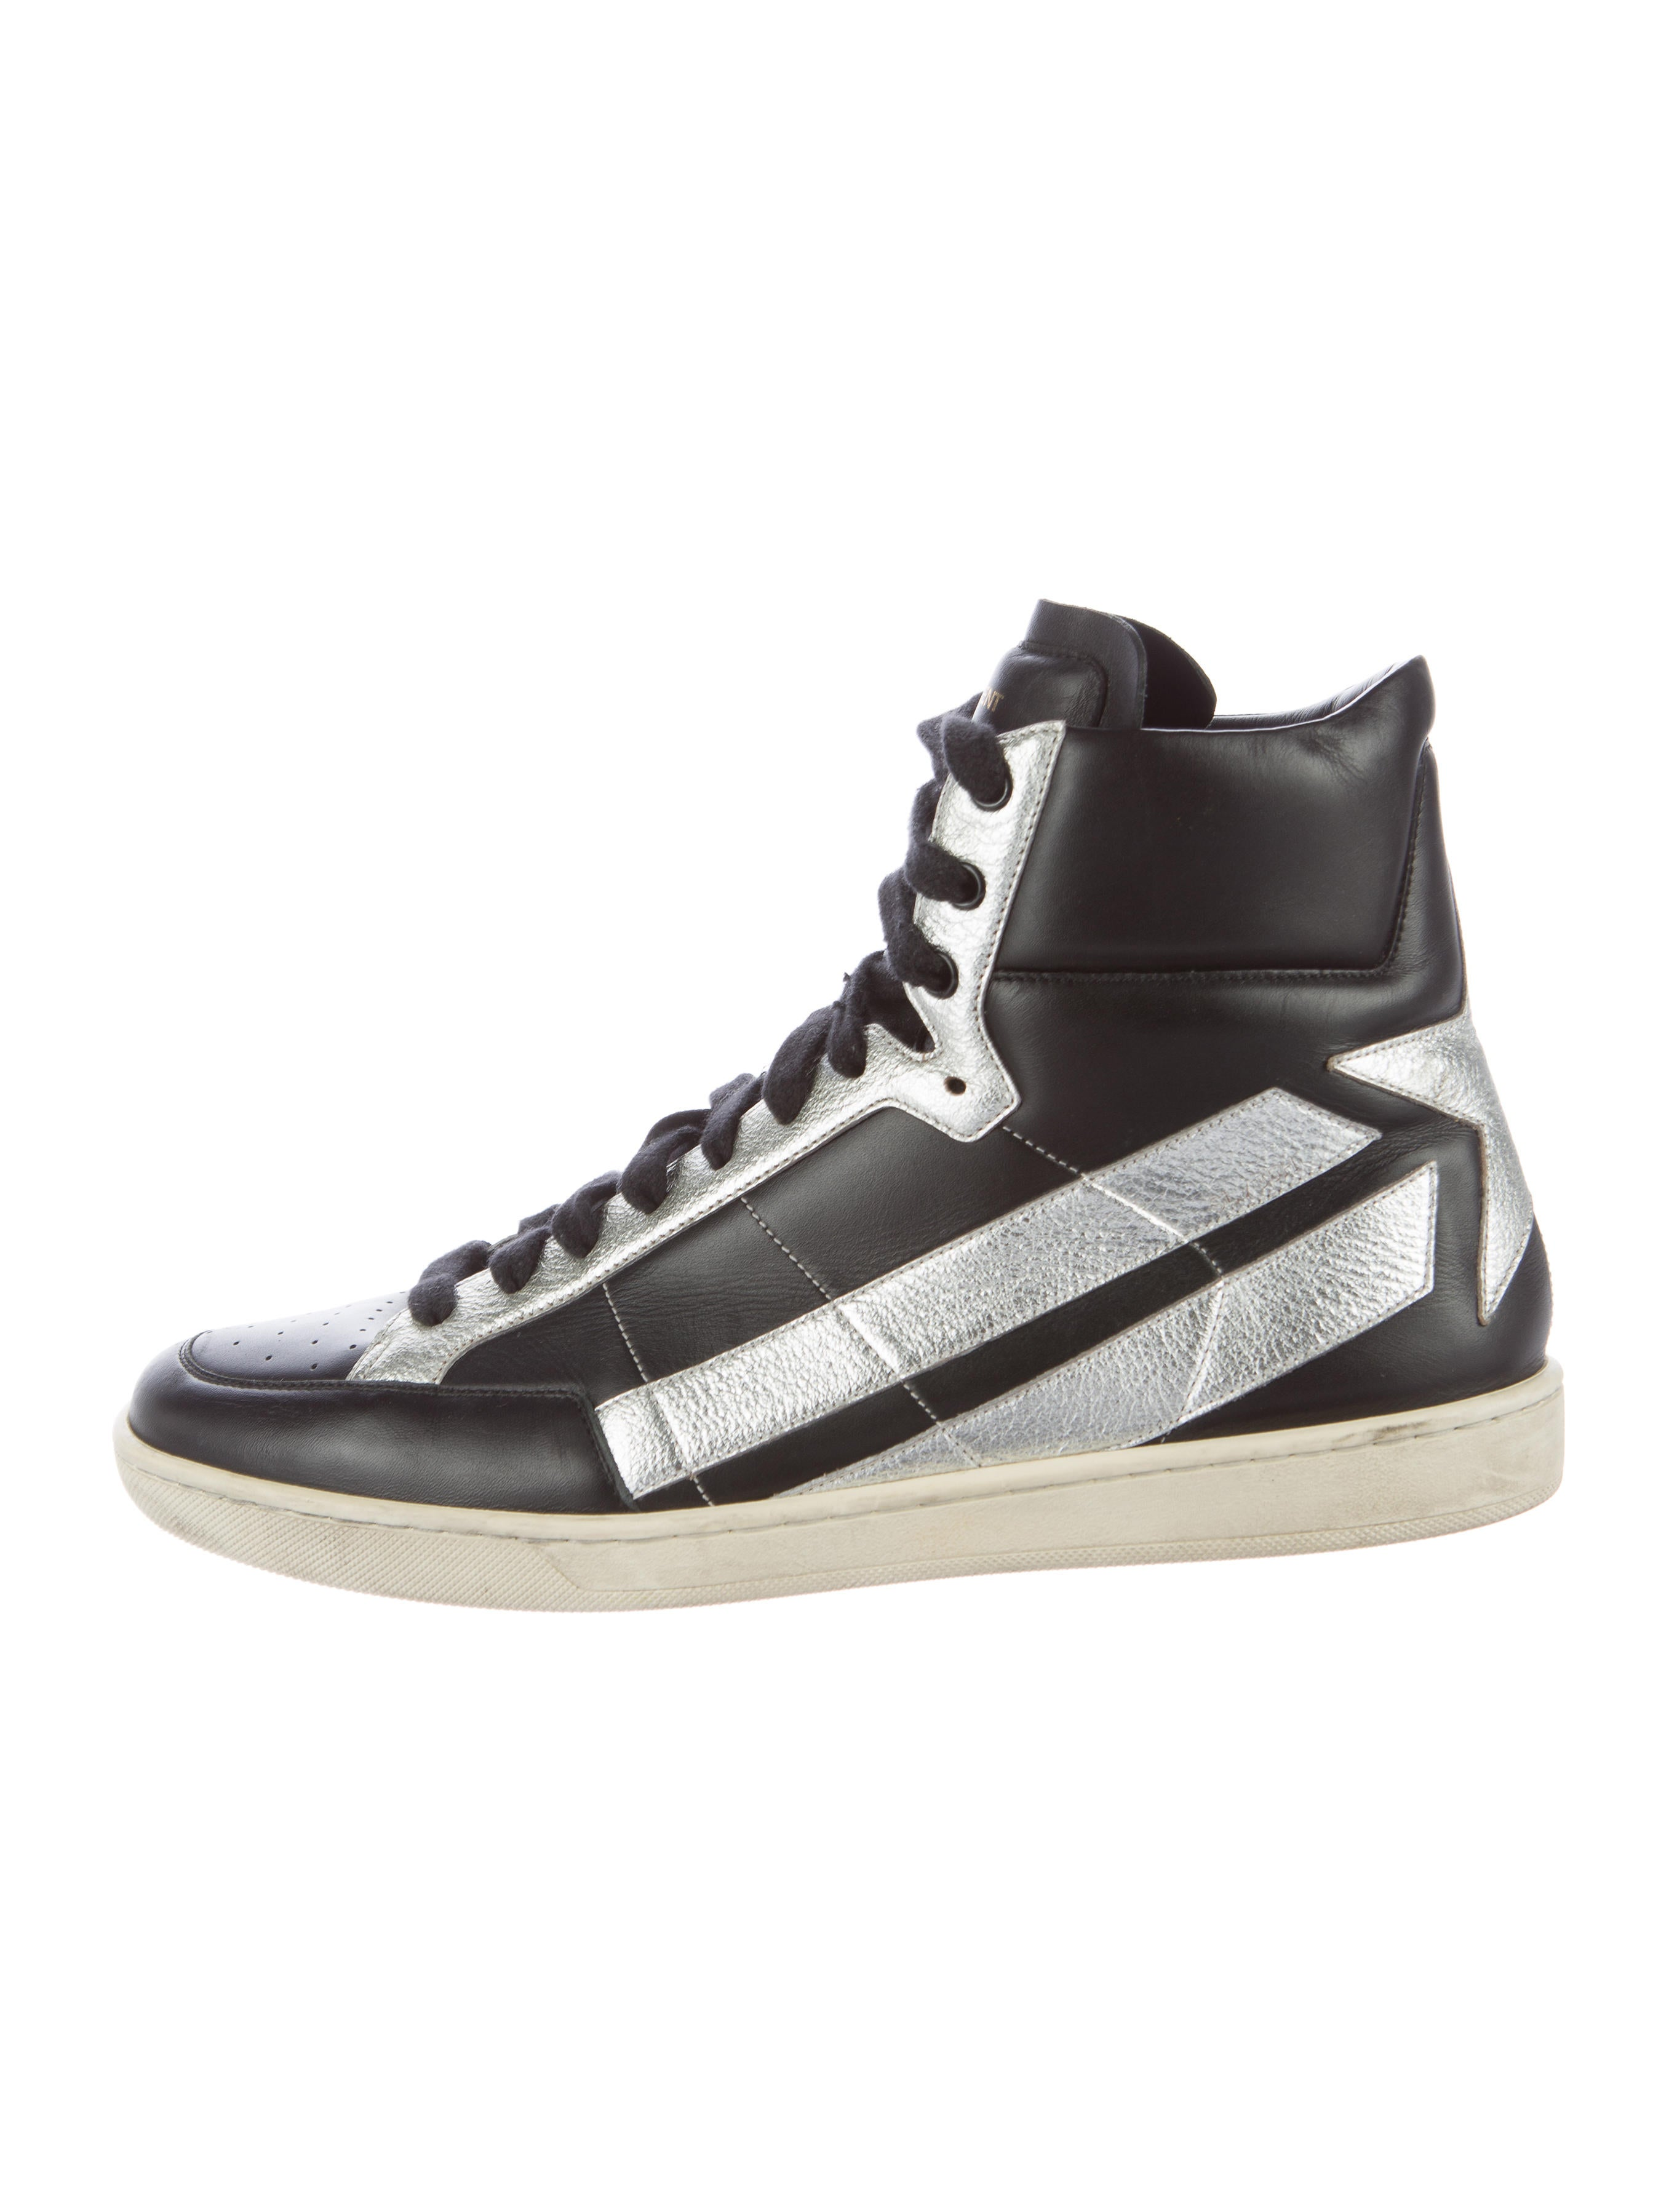 saint laurent leather high top sneakers shoes snt33125 the realreal. Black Bedroom Furniture Sets. Home Design Ideas